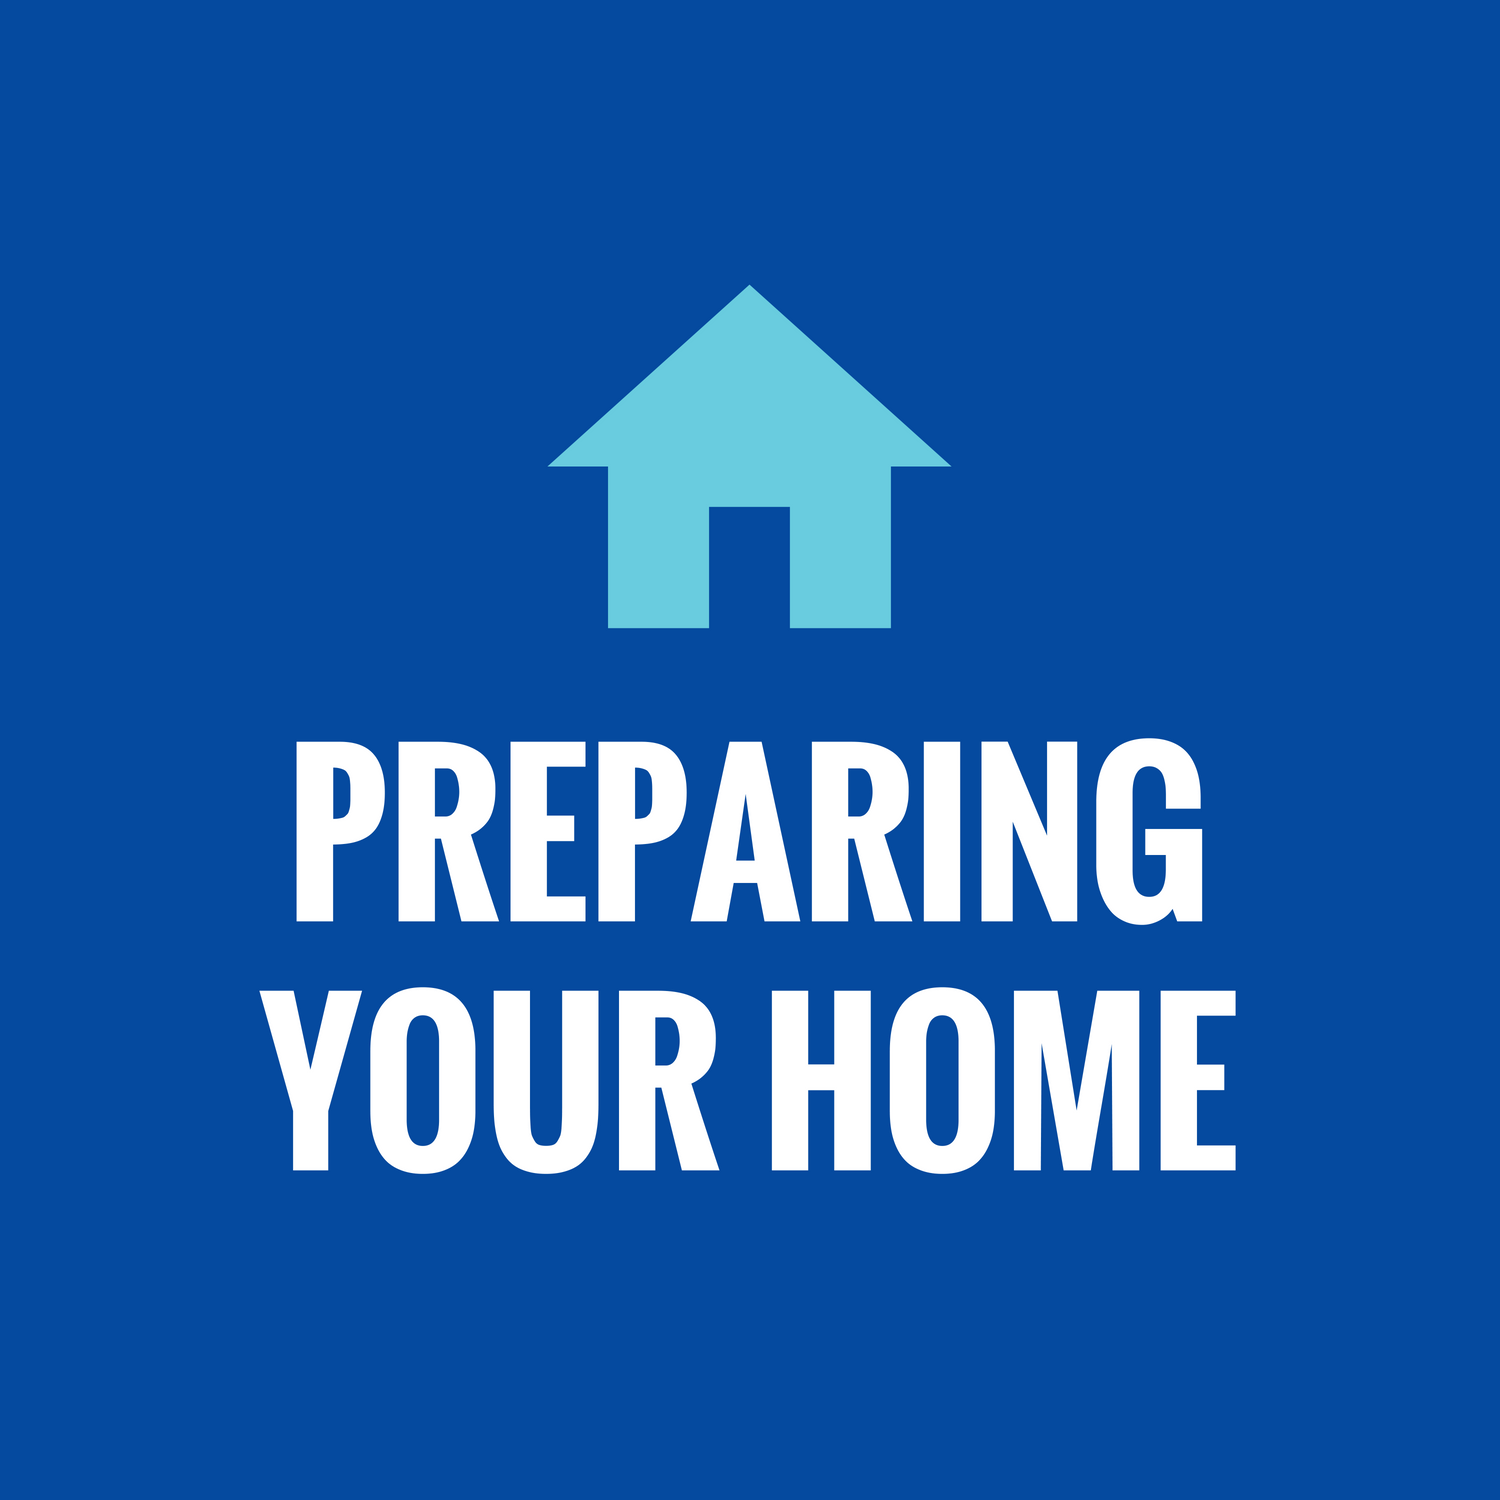 Preparing Your Home icon